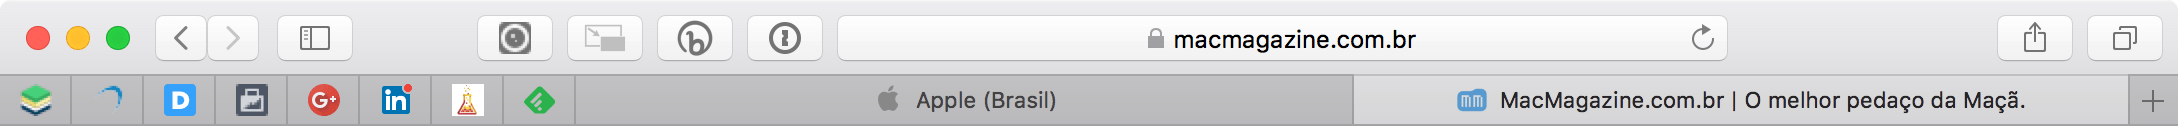 Favicons no Safari do macOS 10.14 Mojave